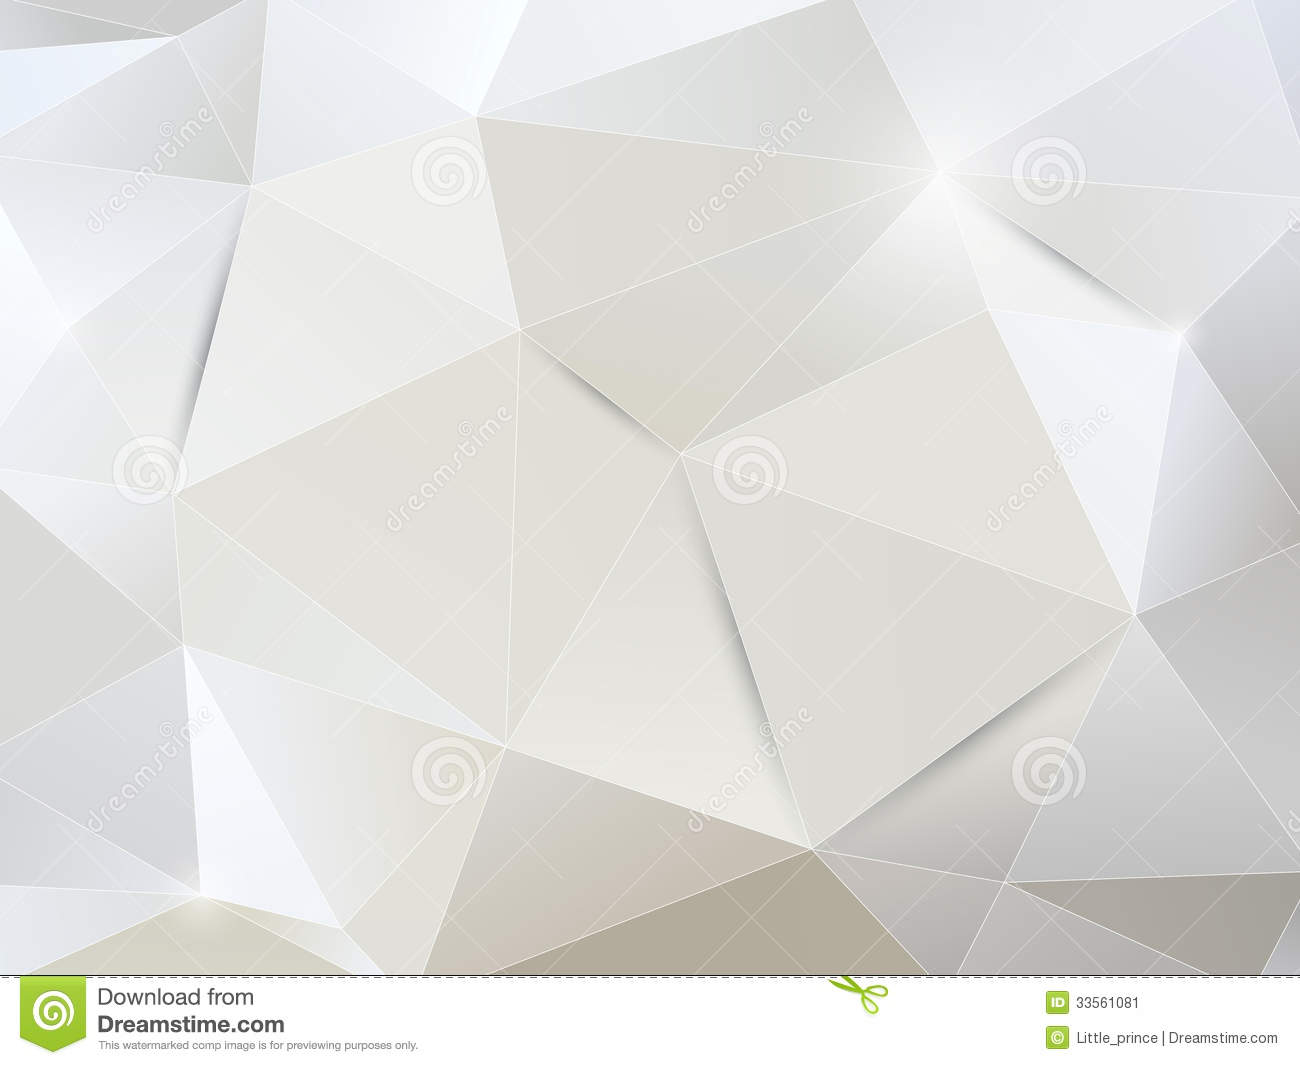 White paper abstract background